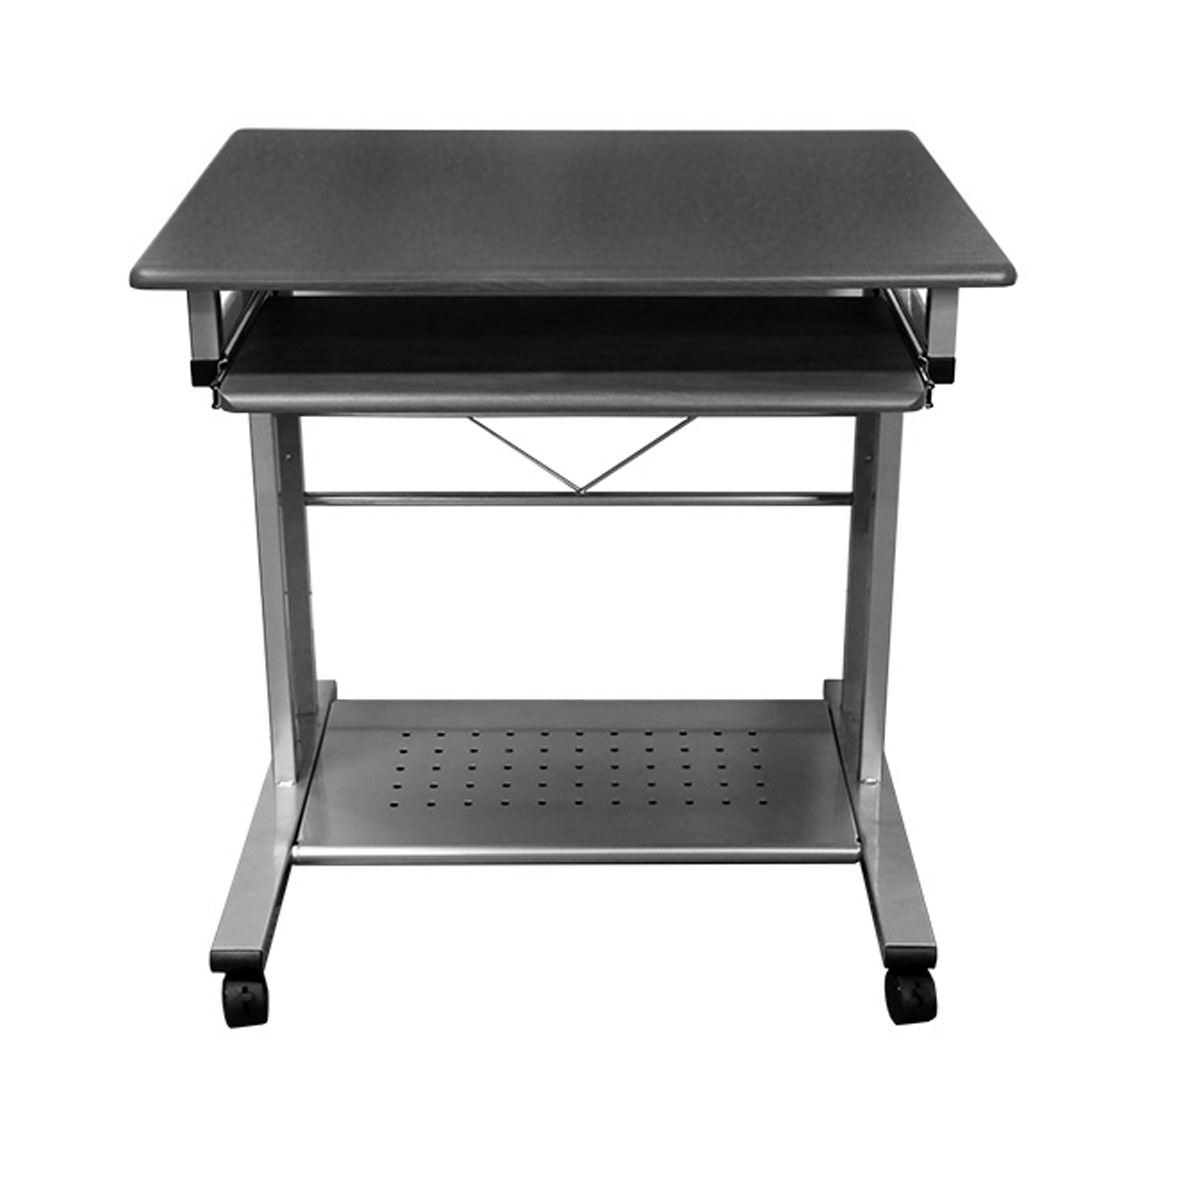 MCD-945A Mobile Compact PC Desk (Anthracite) for smaller offices